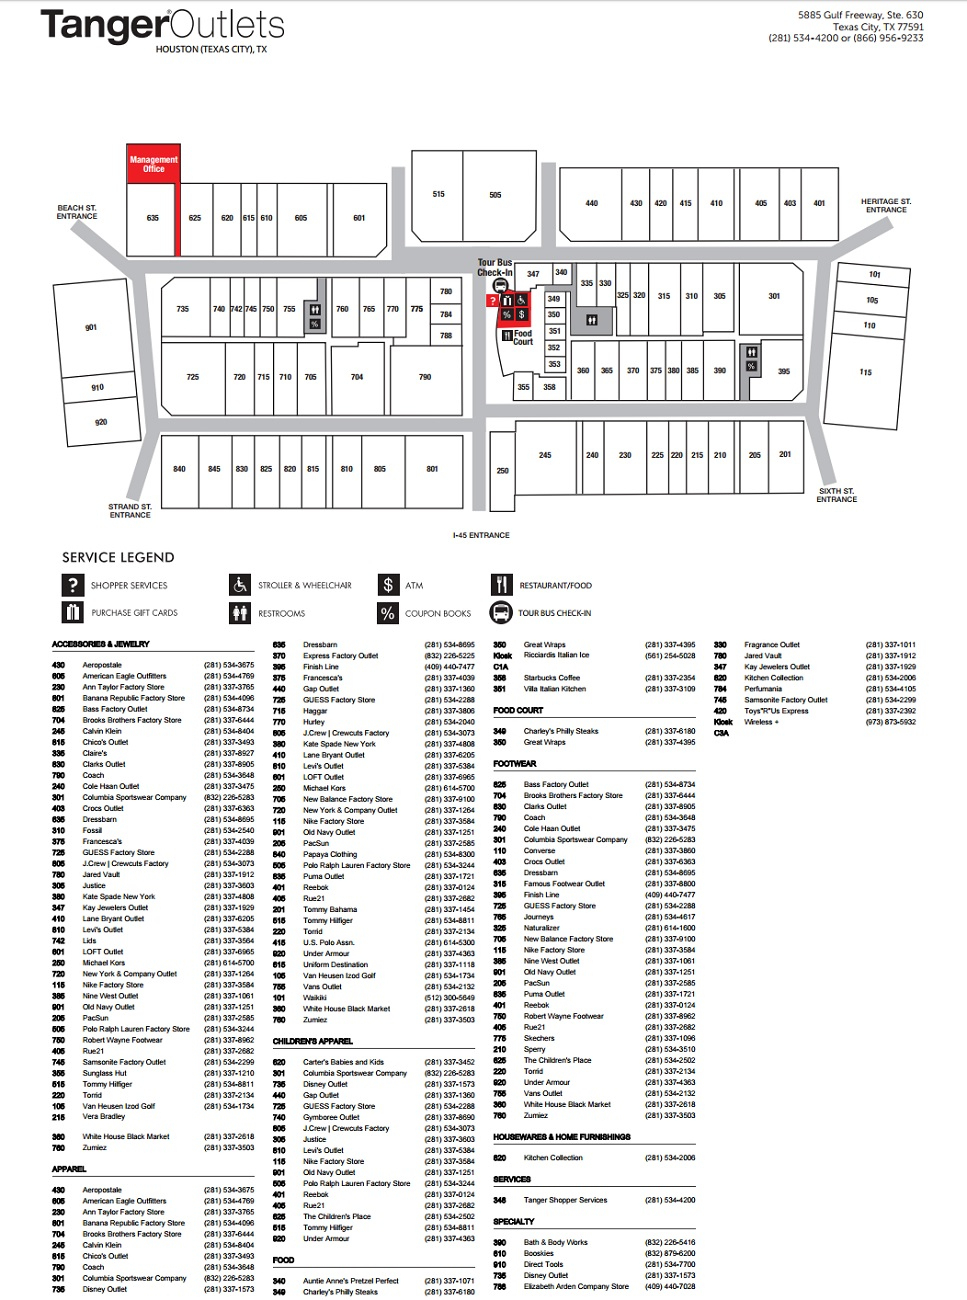 Tanger Outlet Houston (85 Stores) - Outlet Shopping In Texas City - Tanger Outlets Texas City Stores Map